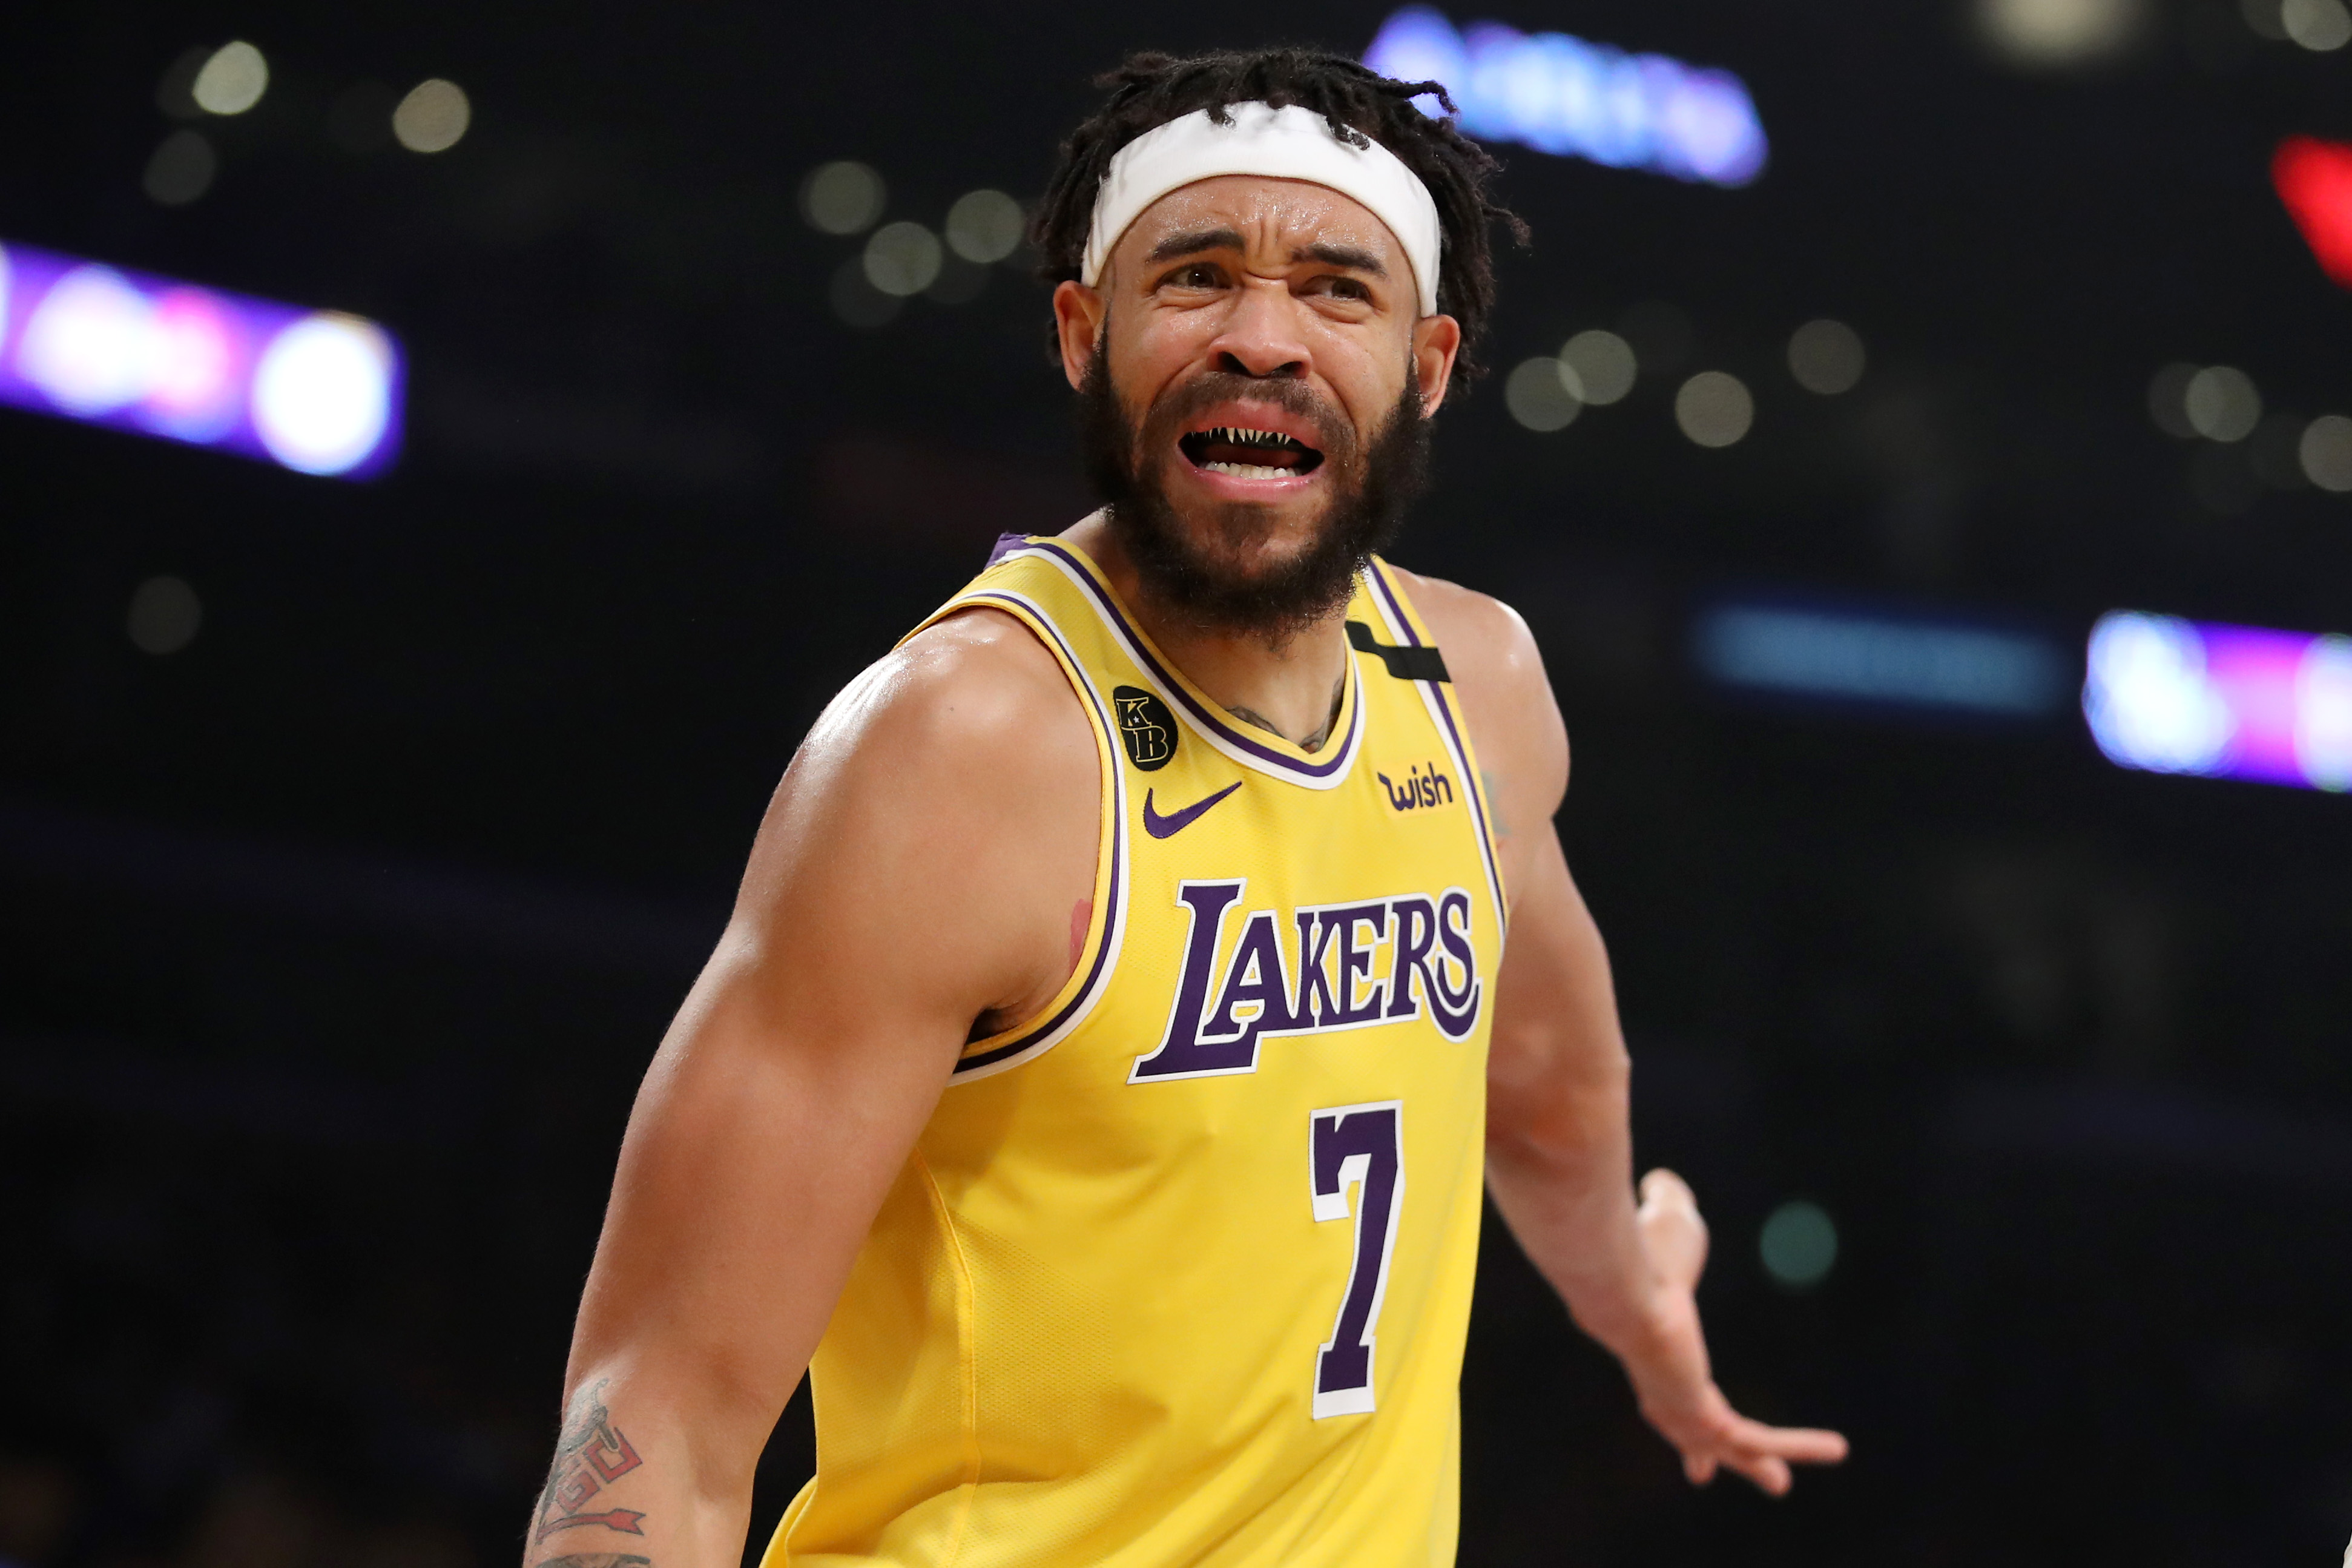 JaVale McGee of the Los Angeles Lakers reacts to a play